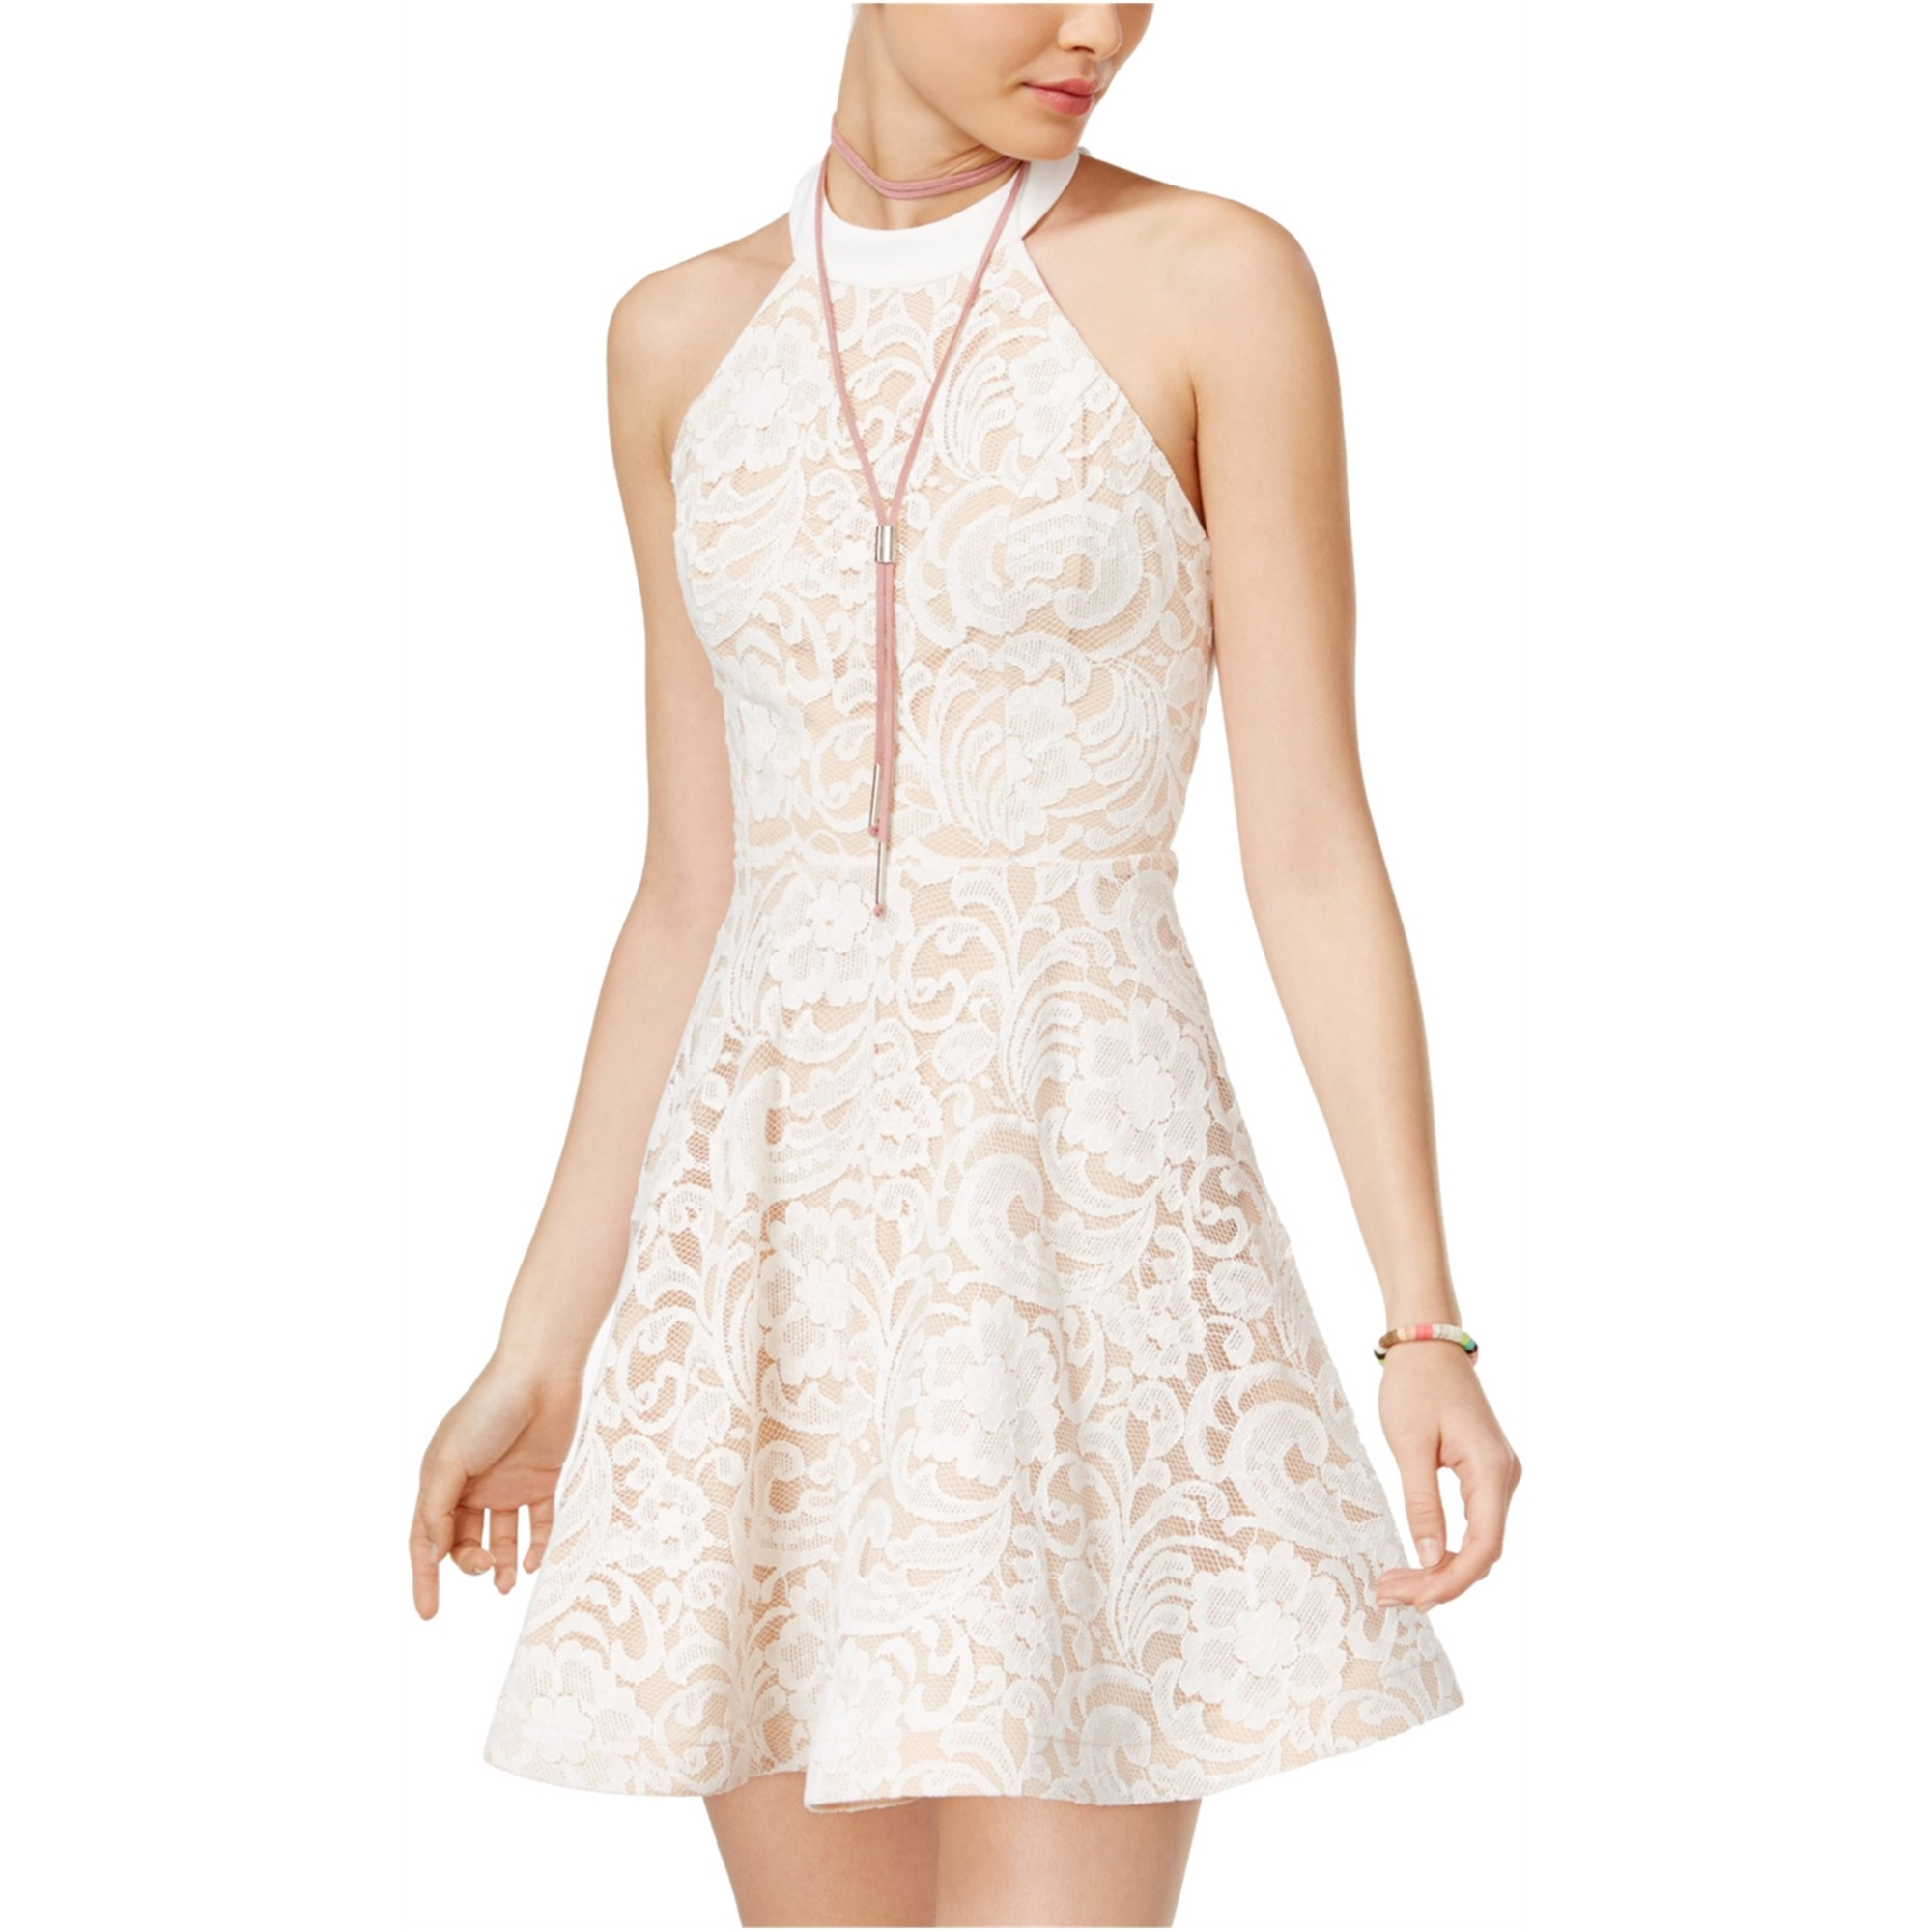 B. Darlin Womens Stappy-Back Lace Fit & Flare Dress